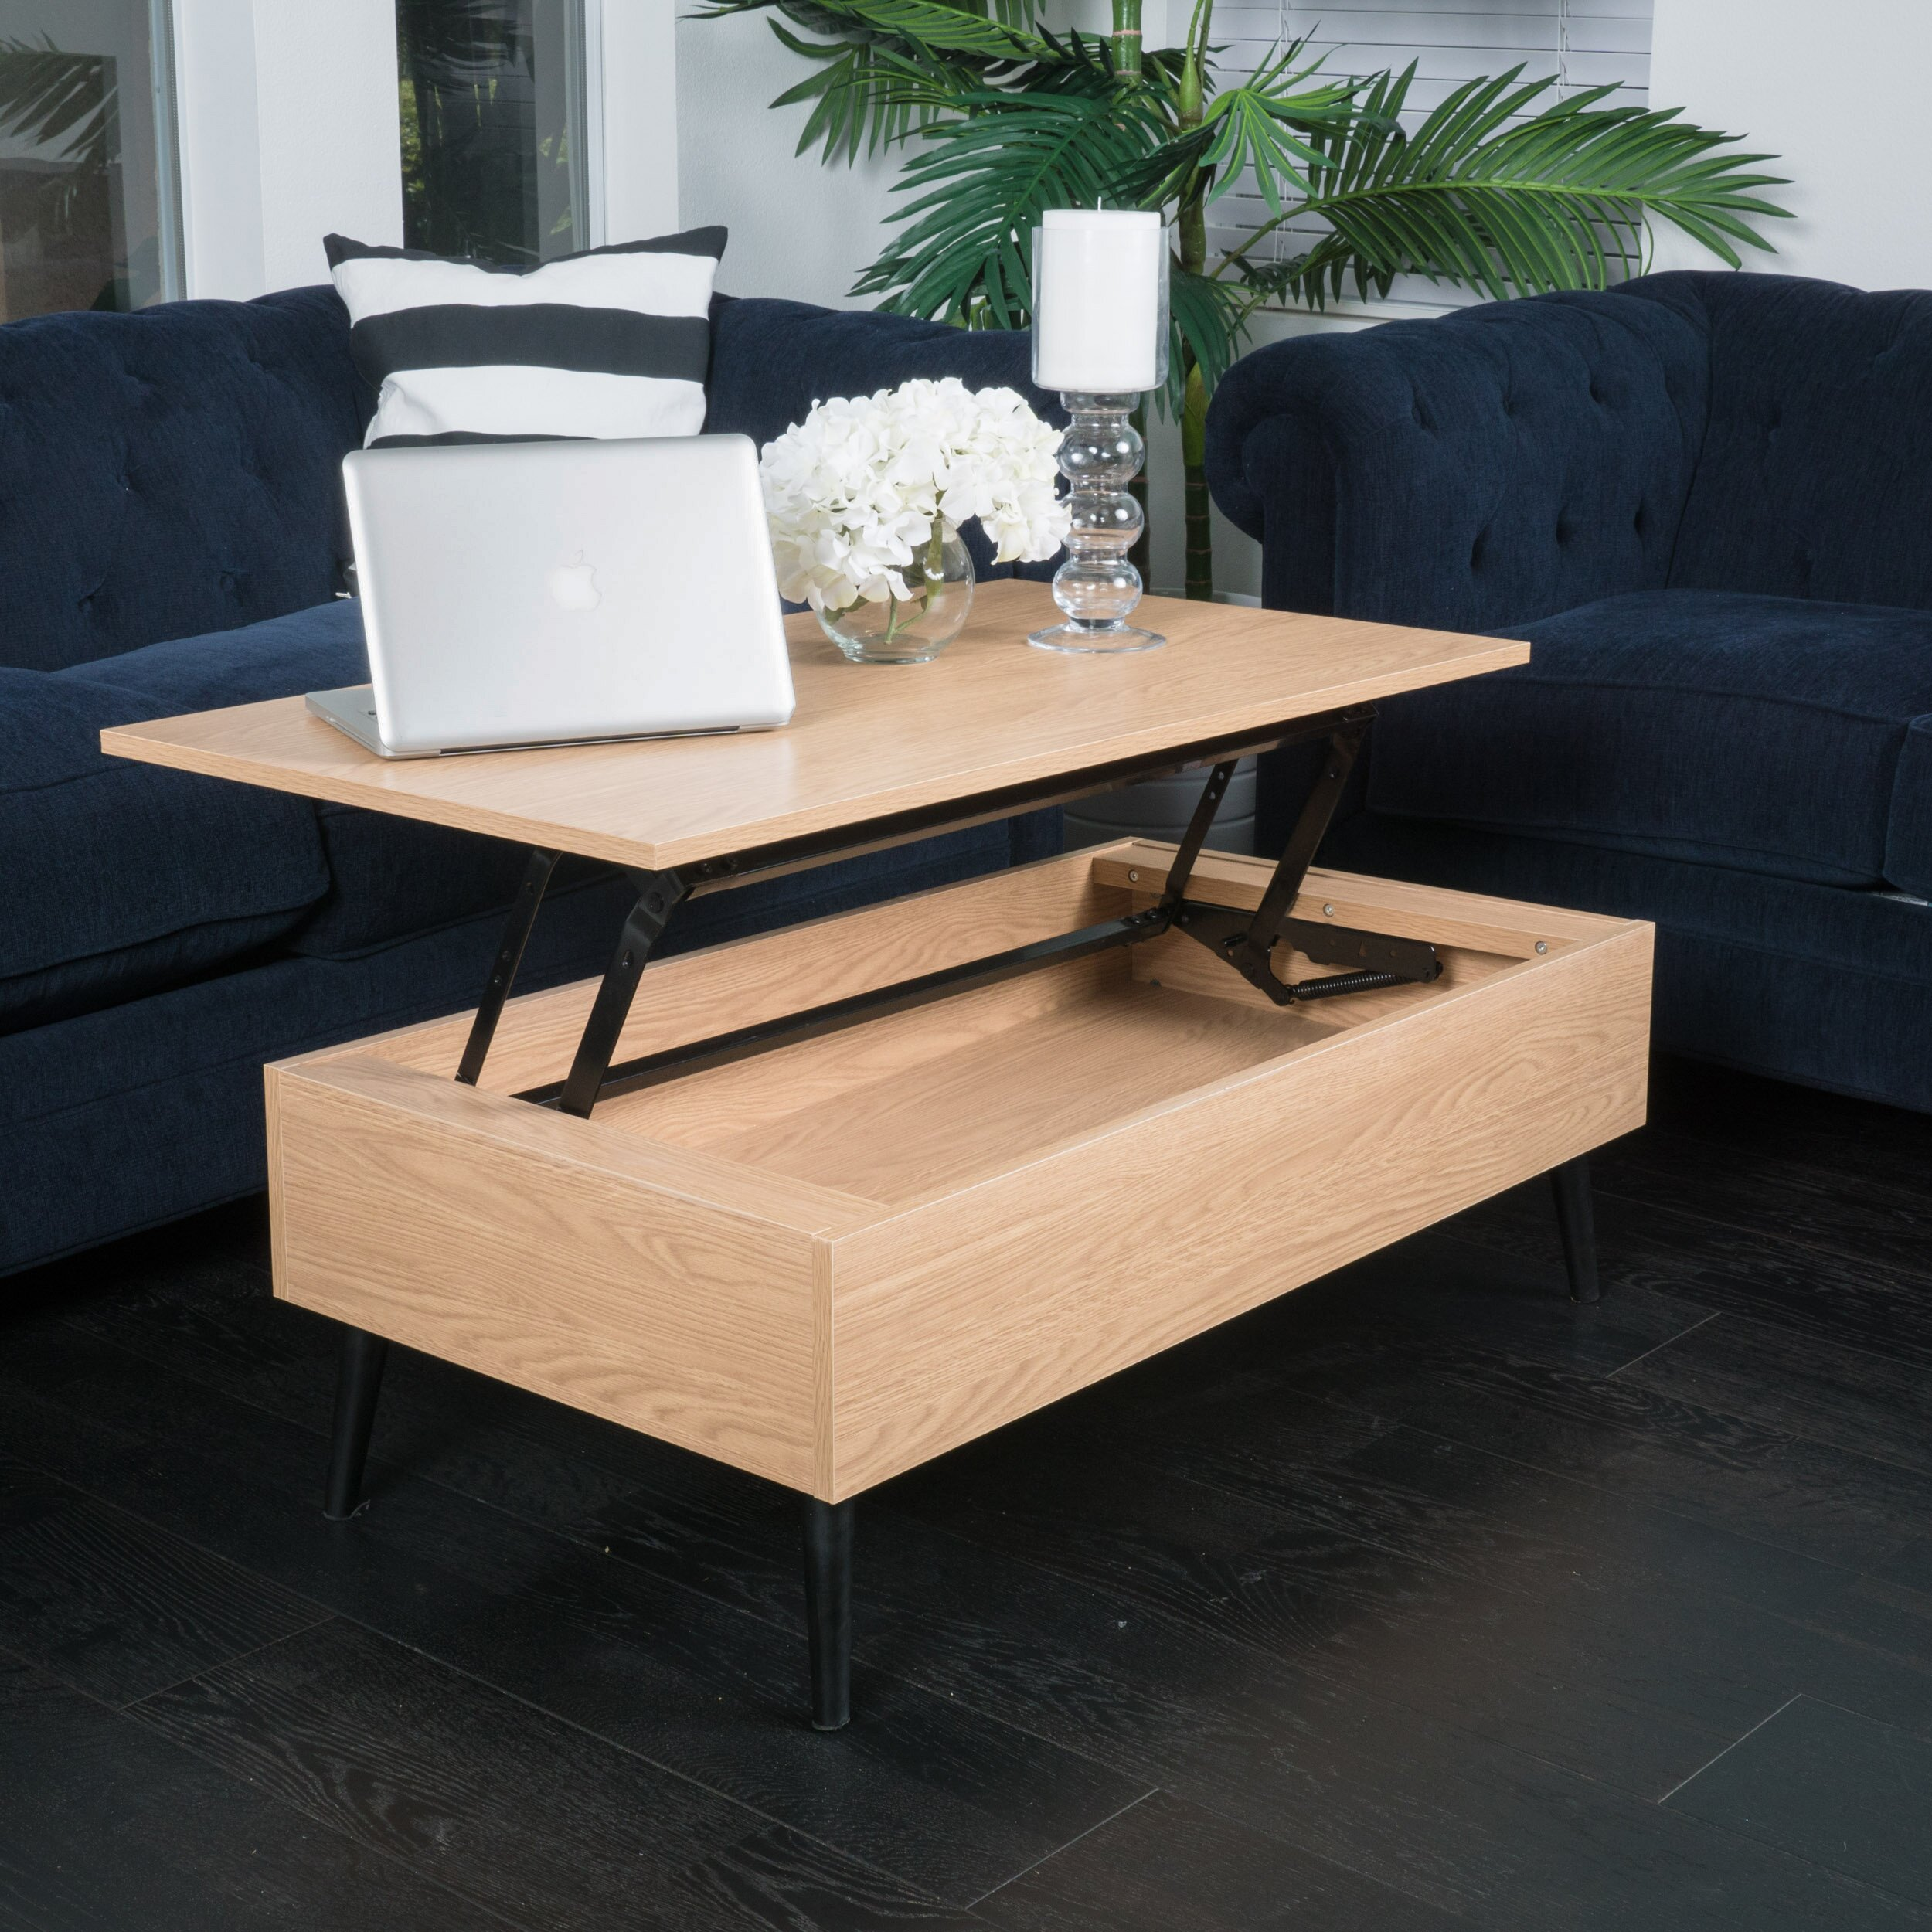 Lift Table Coffee Table: Home Loft Concepts Henry Coffee Table With Lift Top